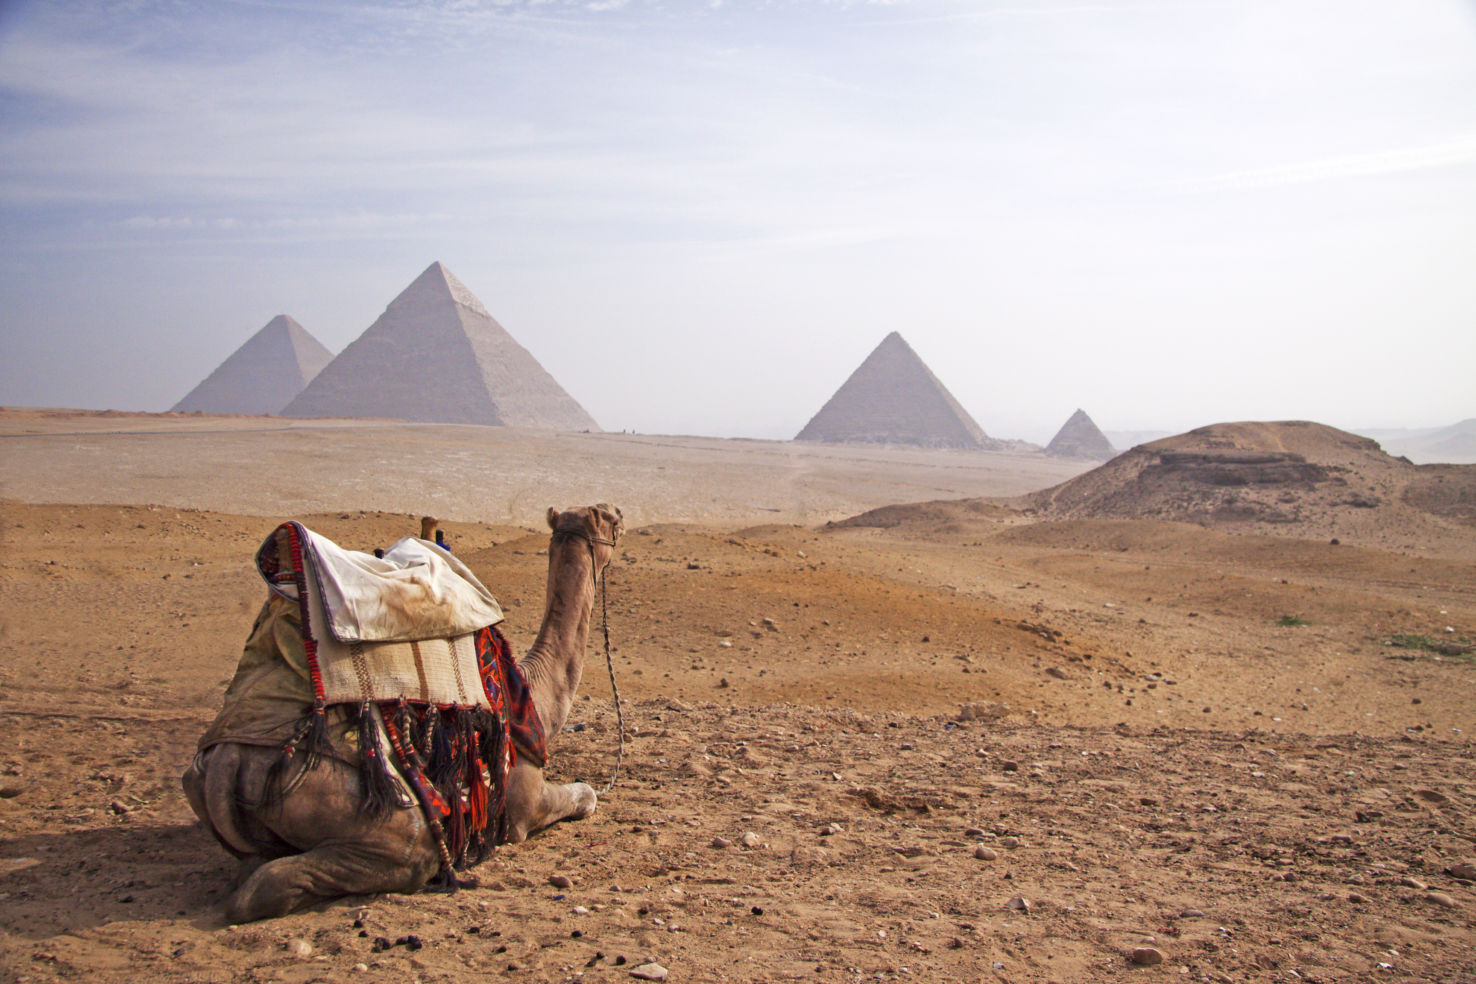 Camel contemplating the pyramids of Egypt